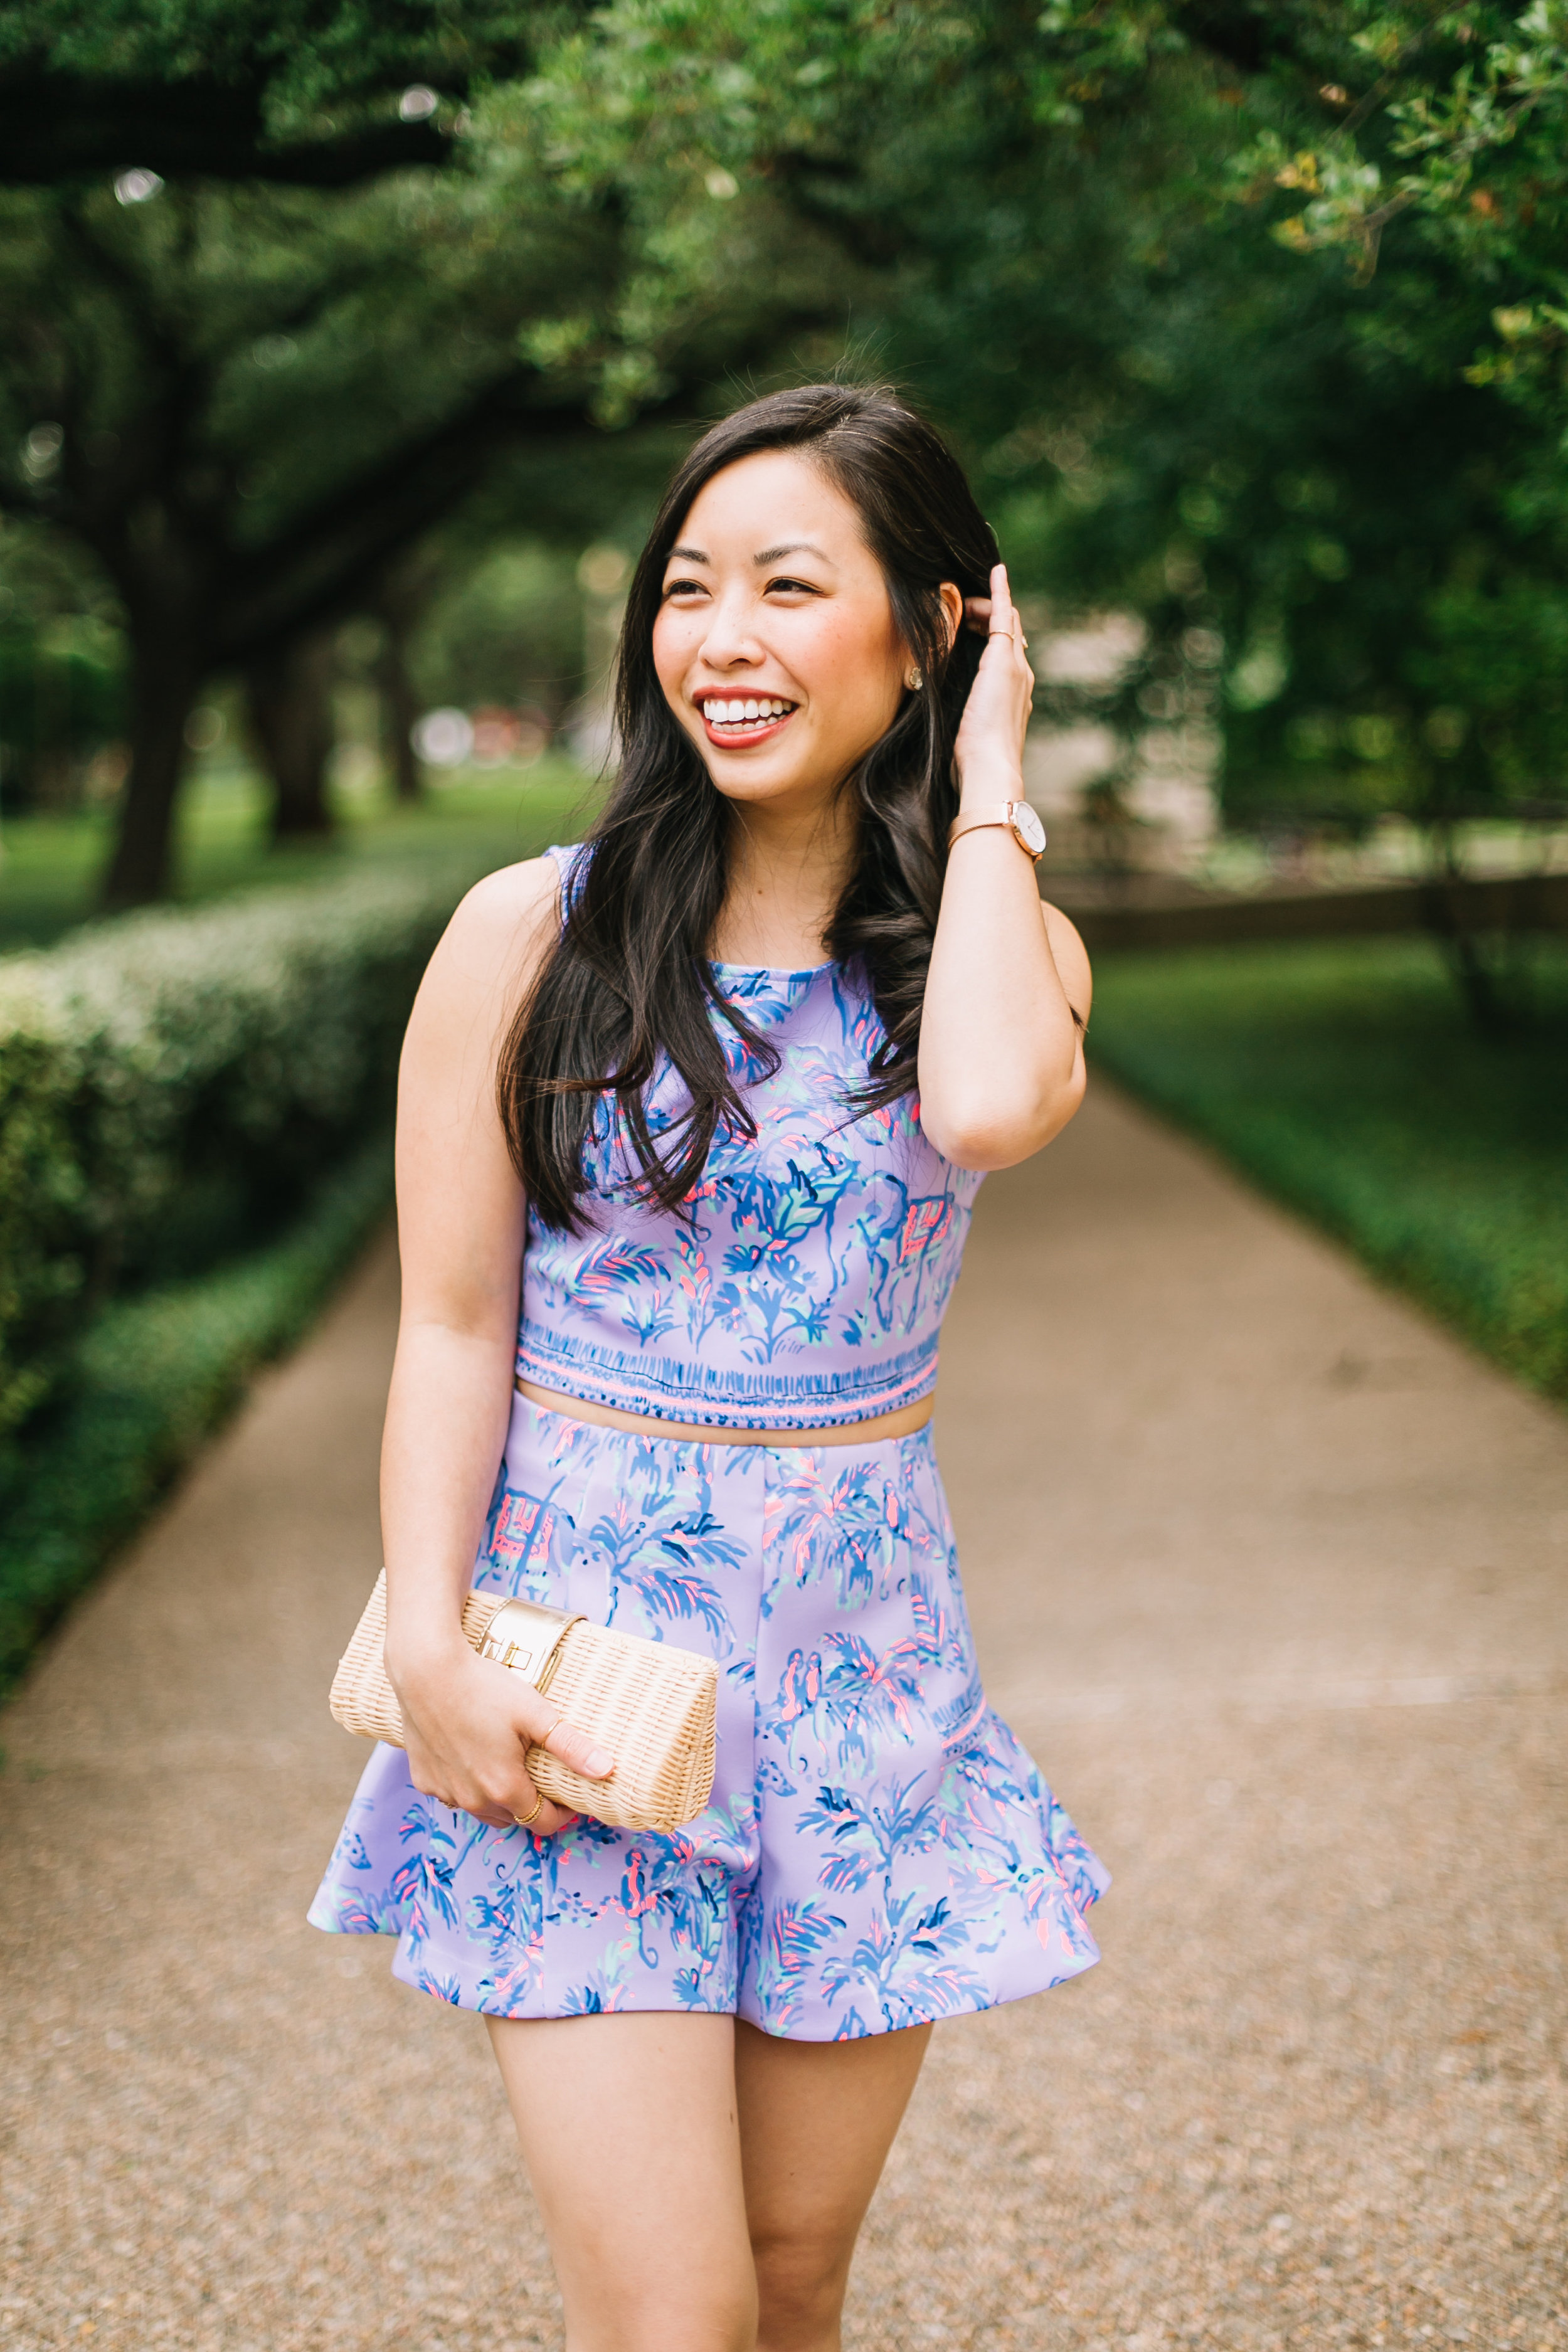 the lilly pulitzer two piece -- jannadoan.com